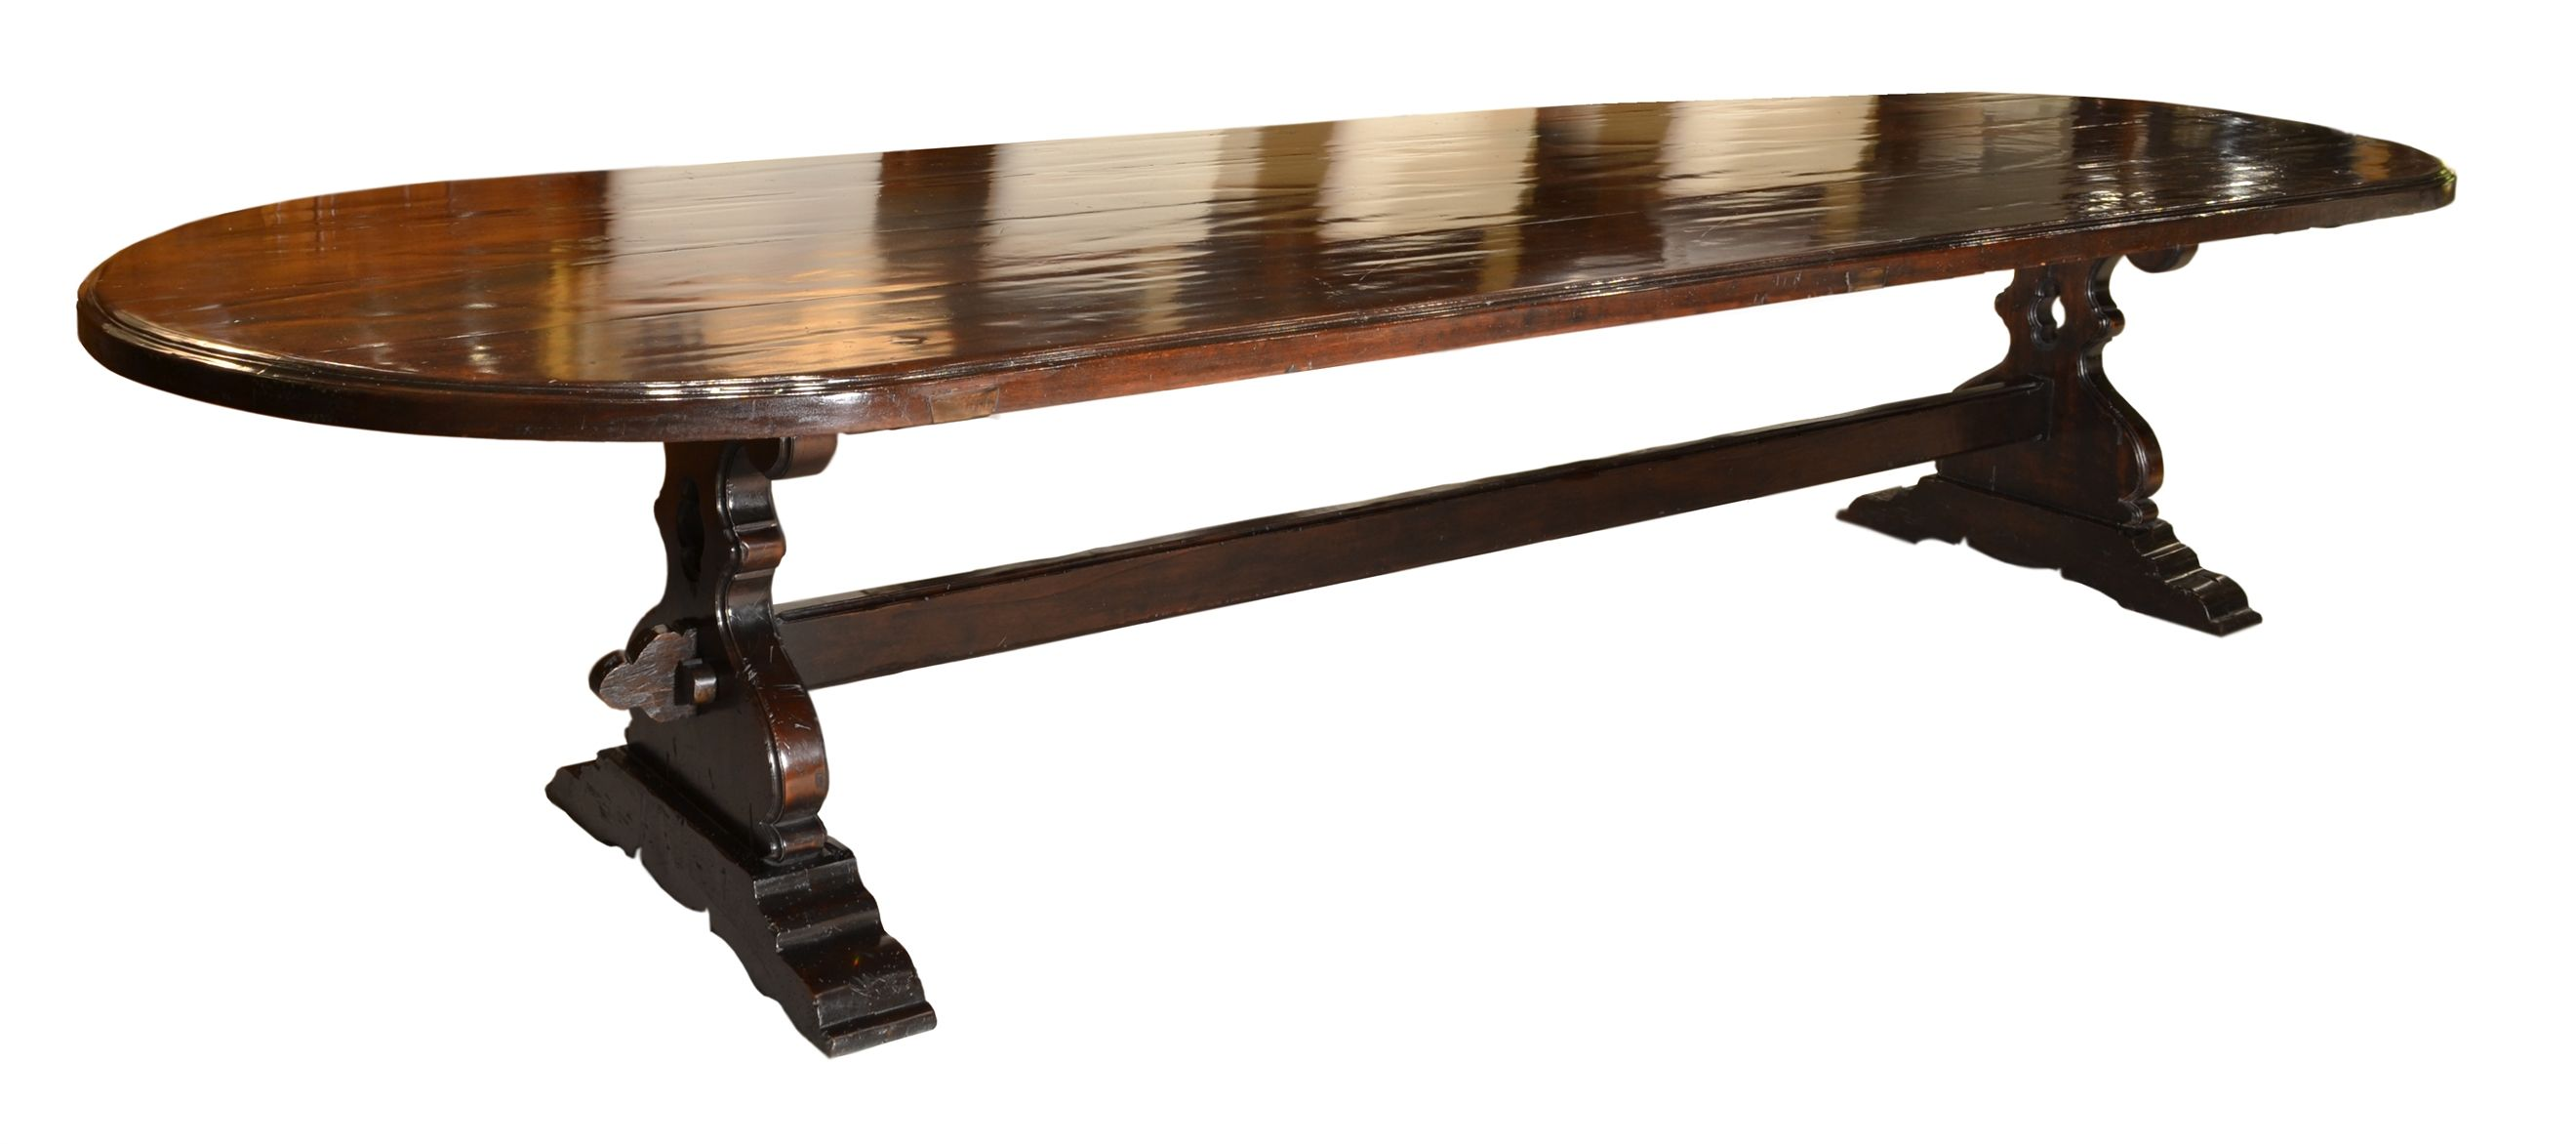 Andorra Dining Table 144 Long Dining Table Dining Table